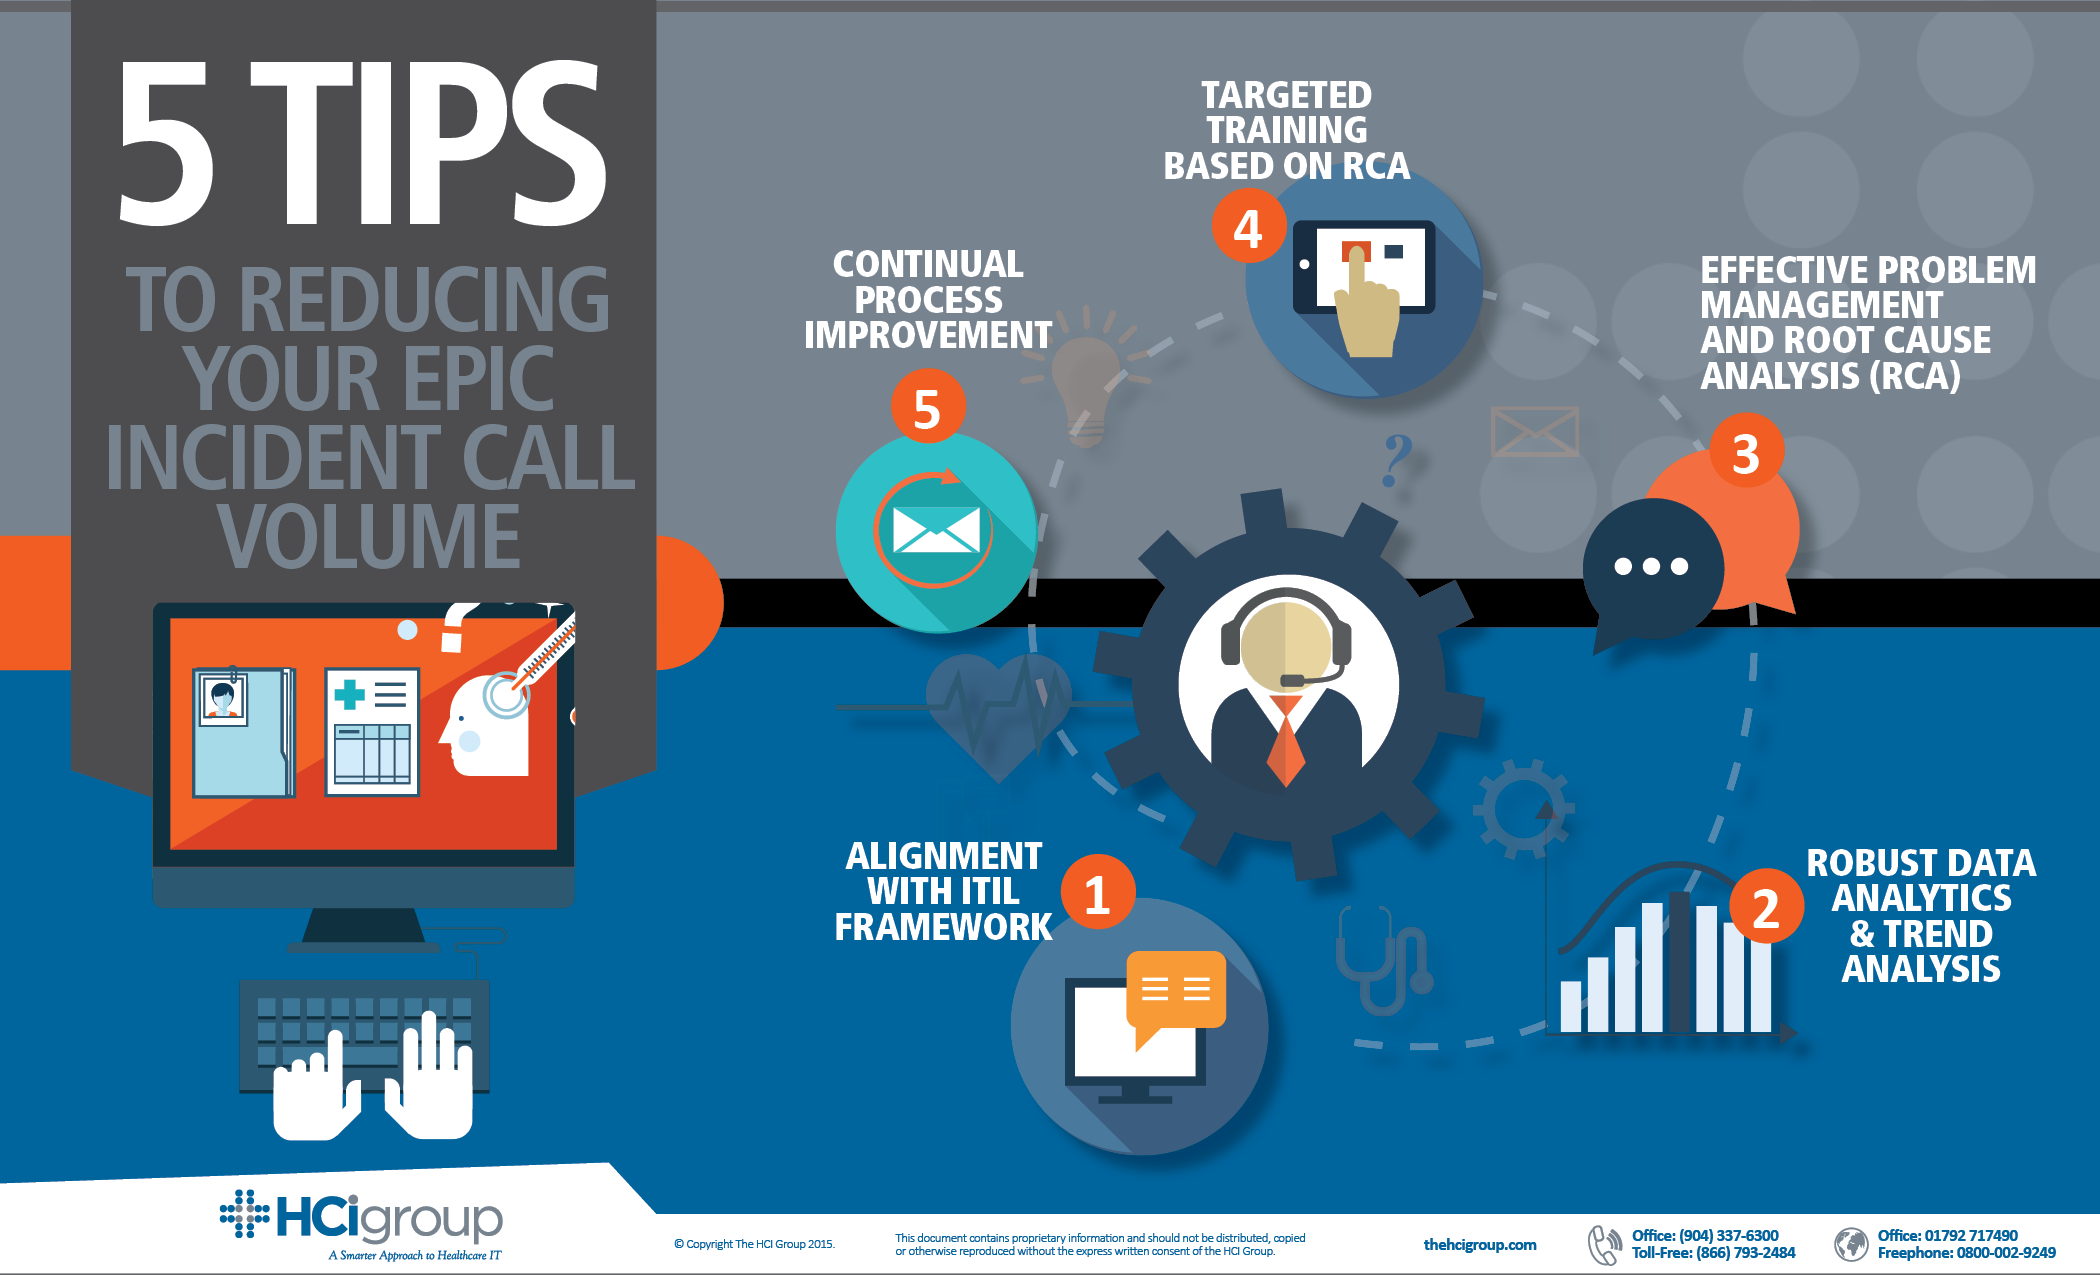 HCI_5_Tips_Infographic_01-30-15